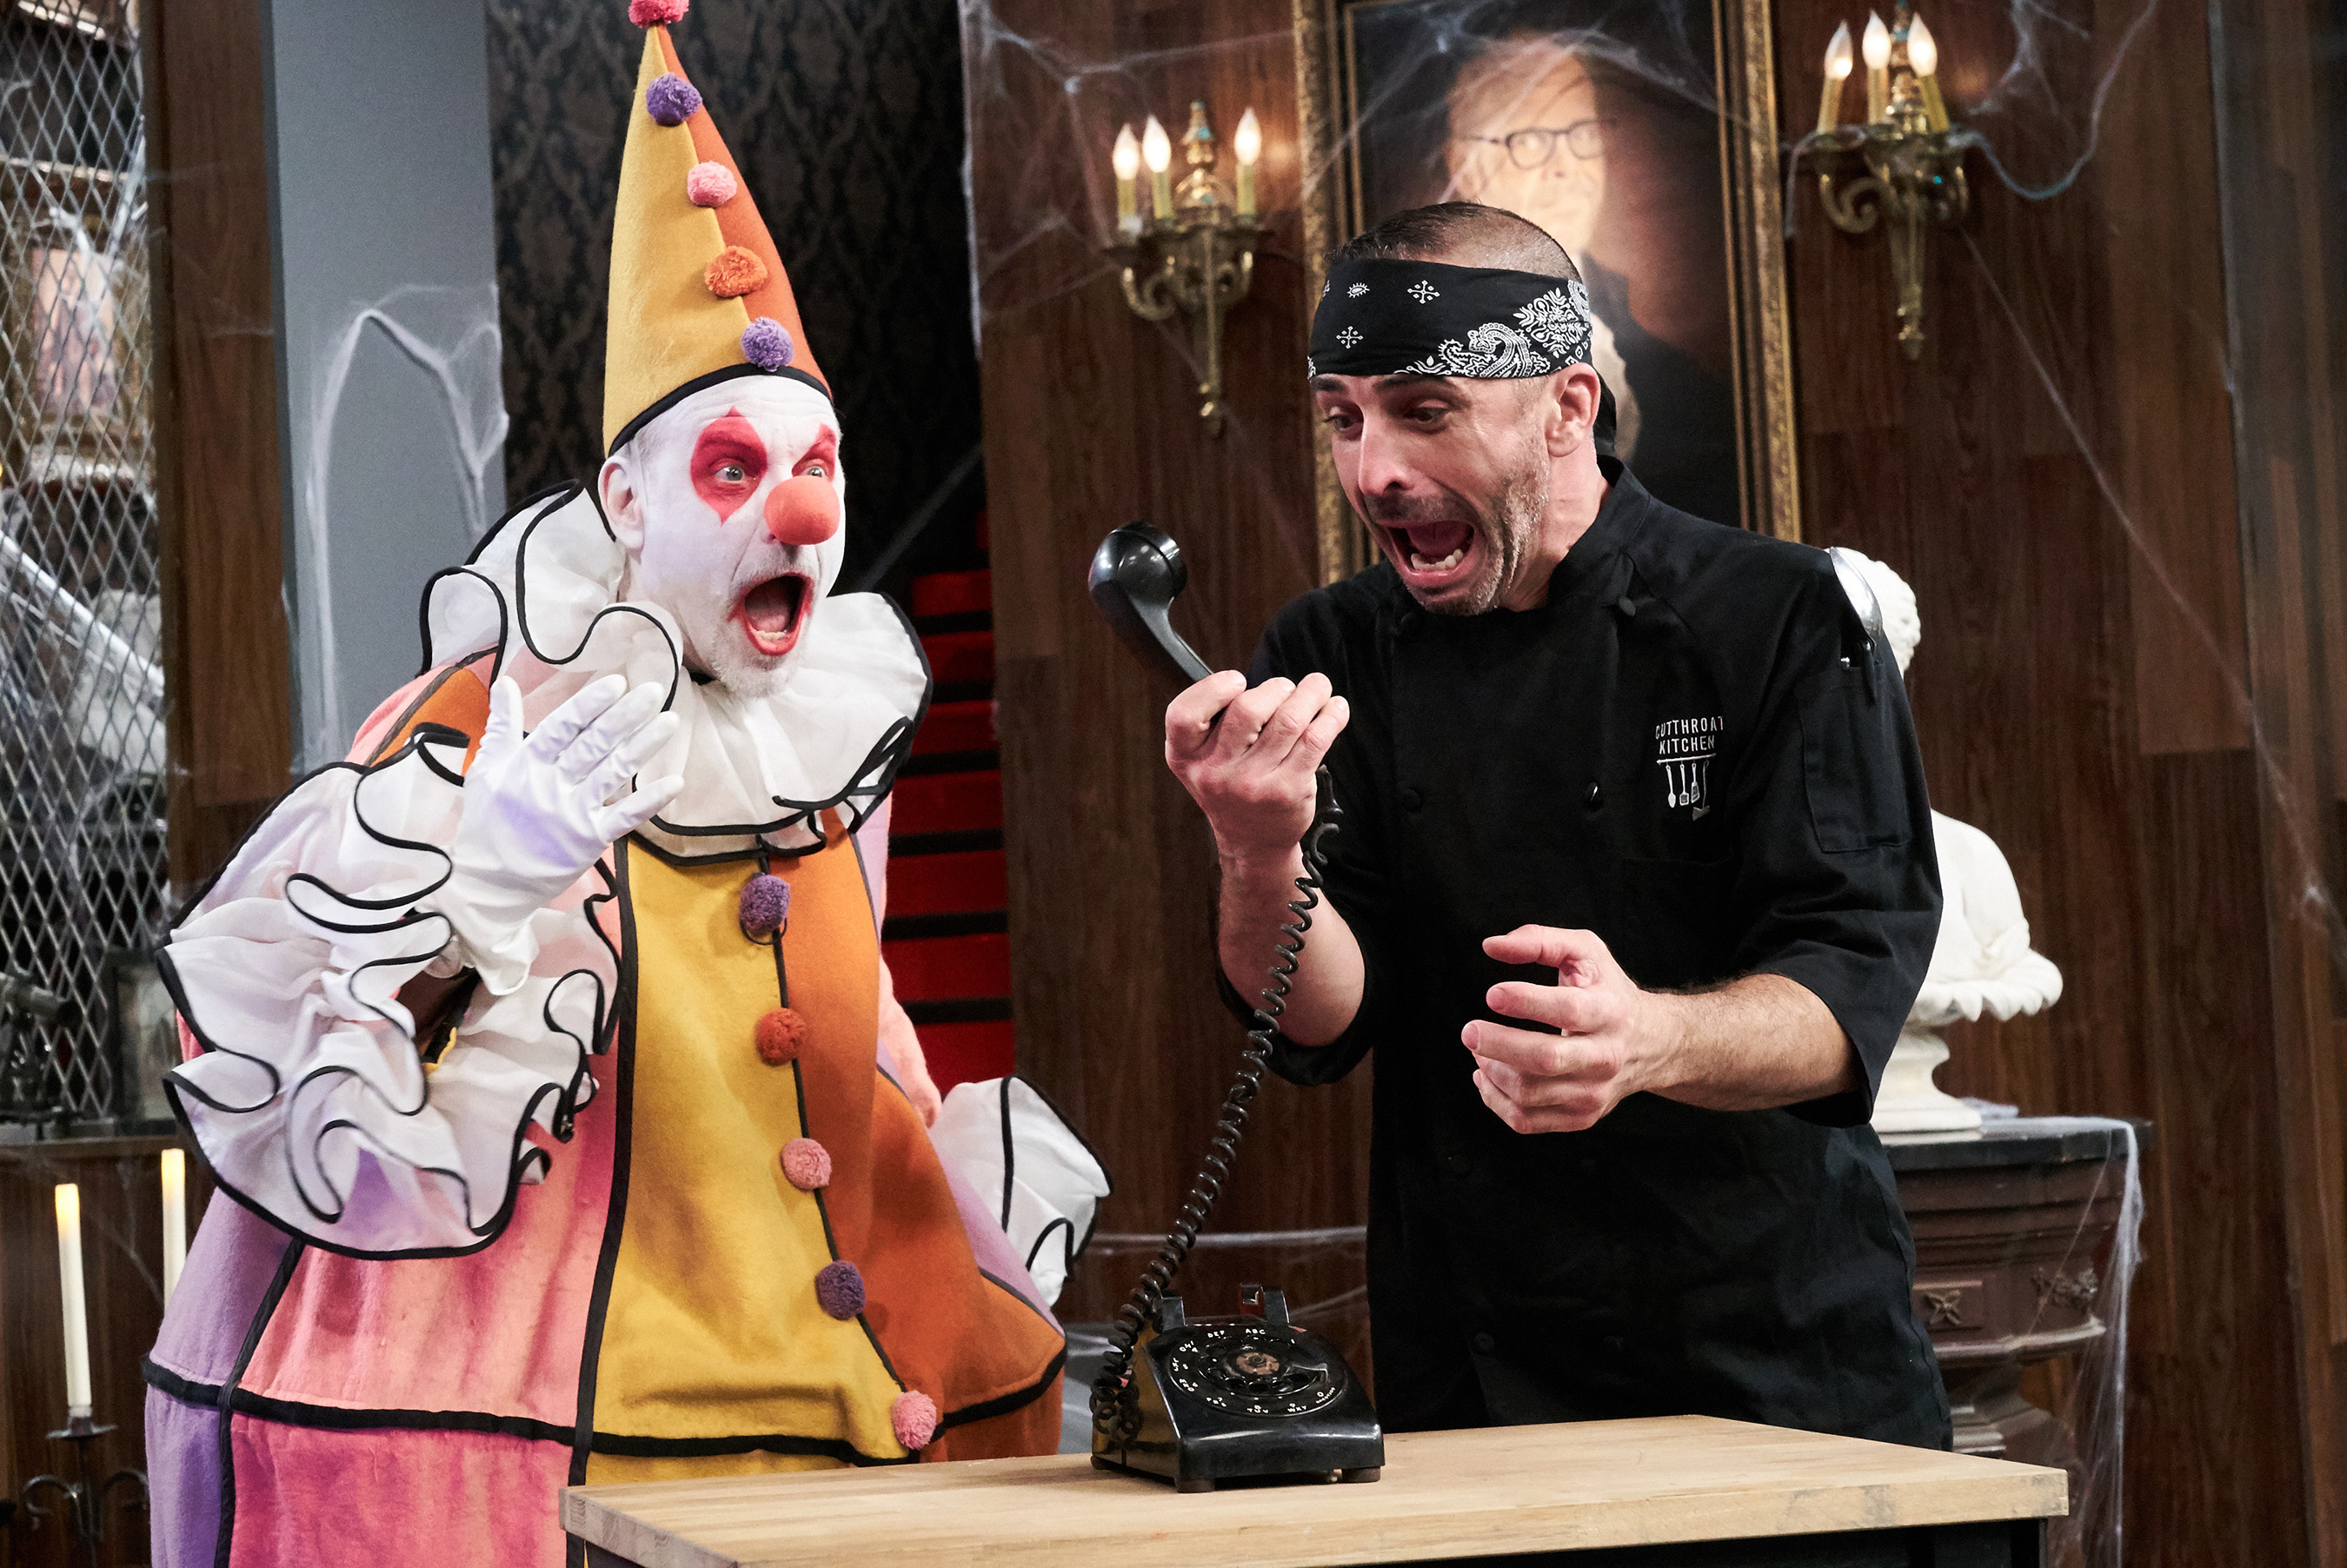 Host Alton Brown with contestant Johnny Messina on Food Network's Cutthroat Kitchen: Tournament of Terror